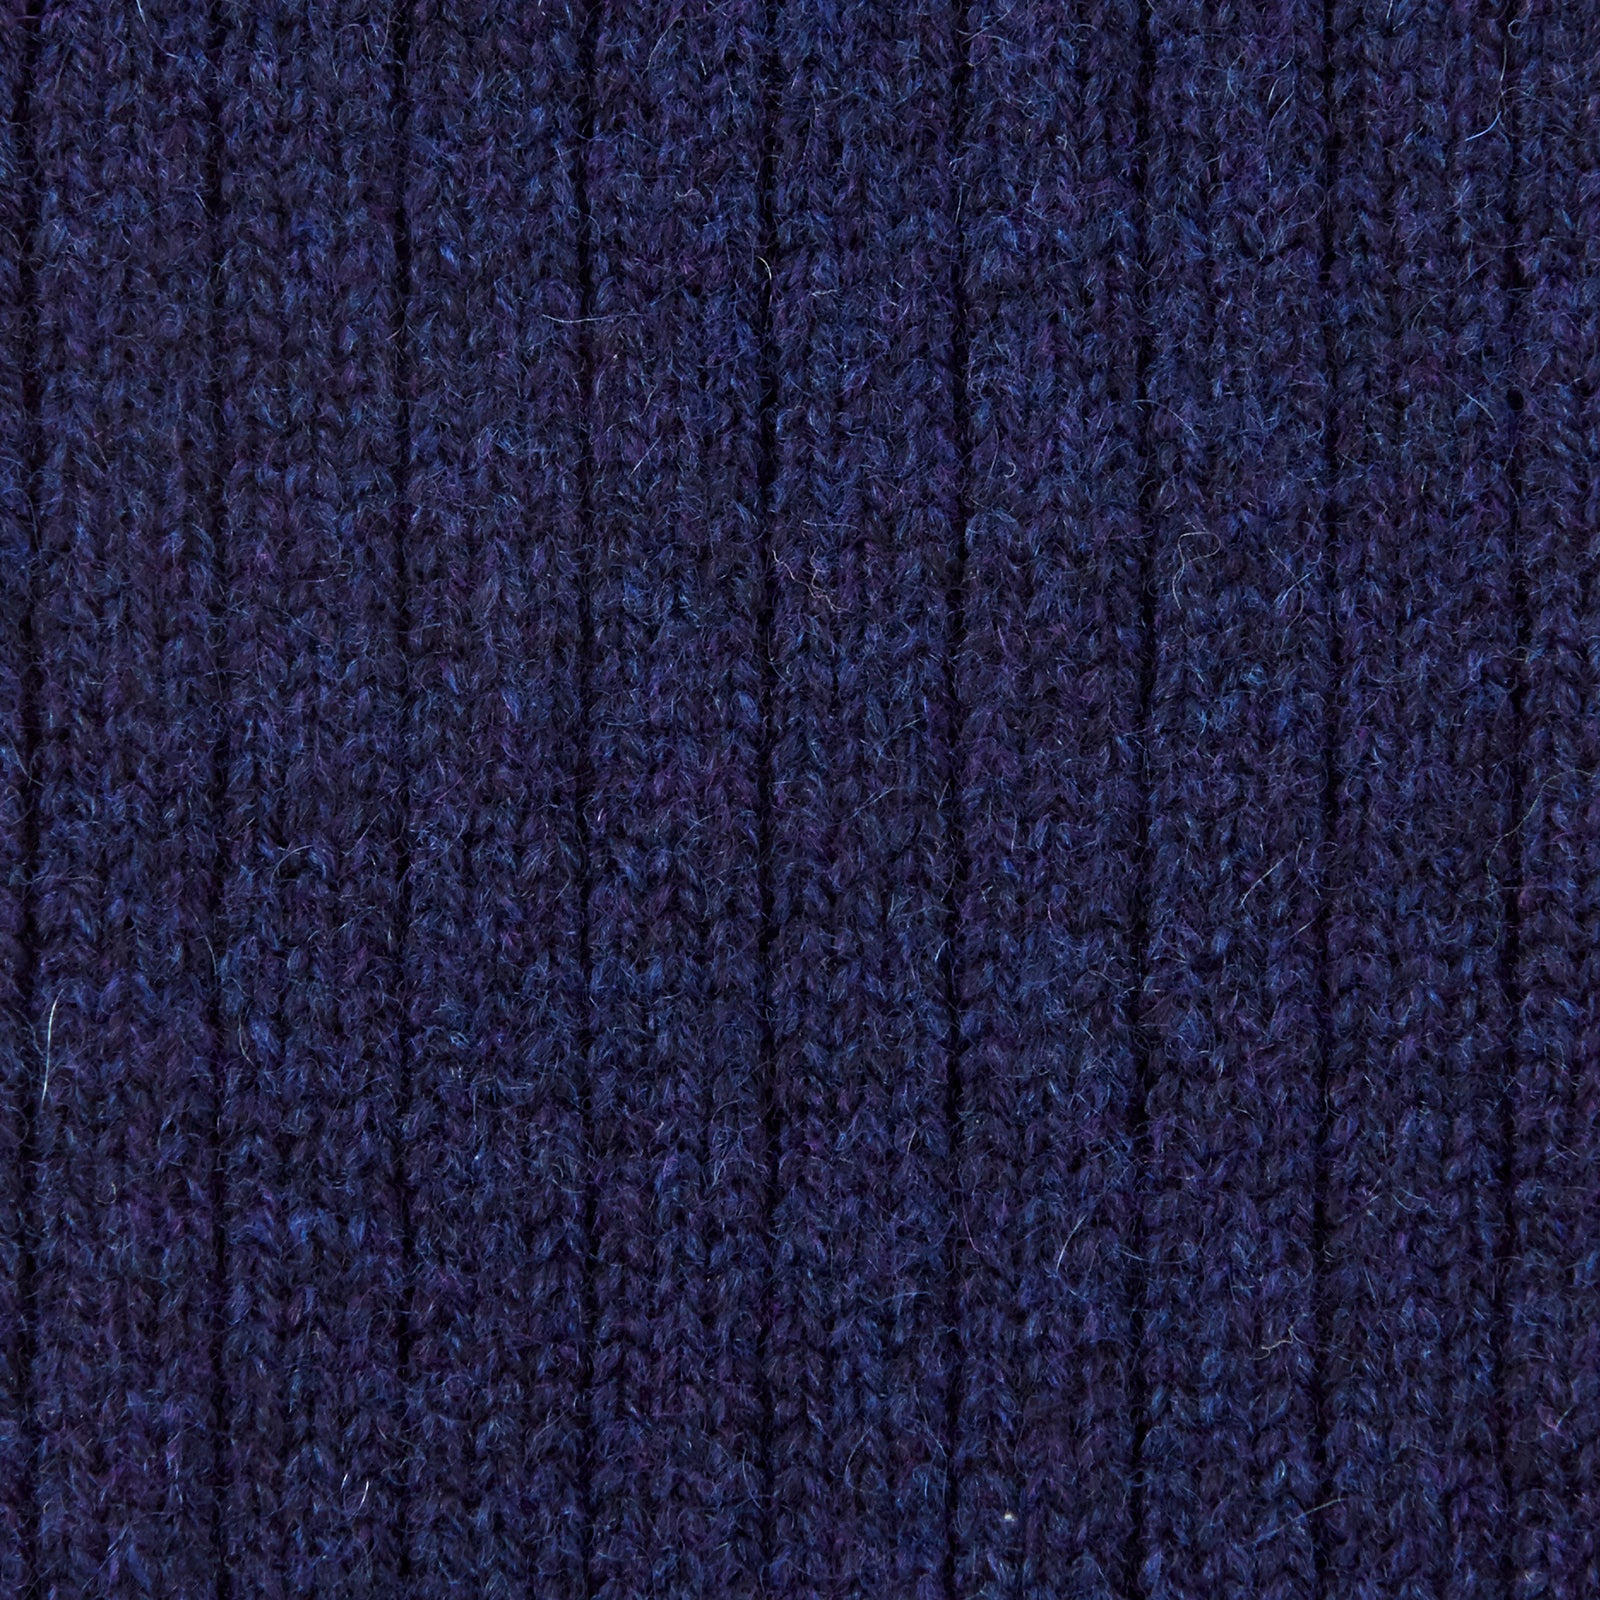 Navy 3/4 Length Cashmere Socks